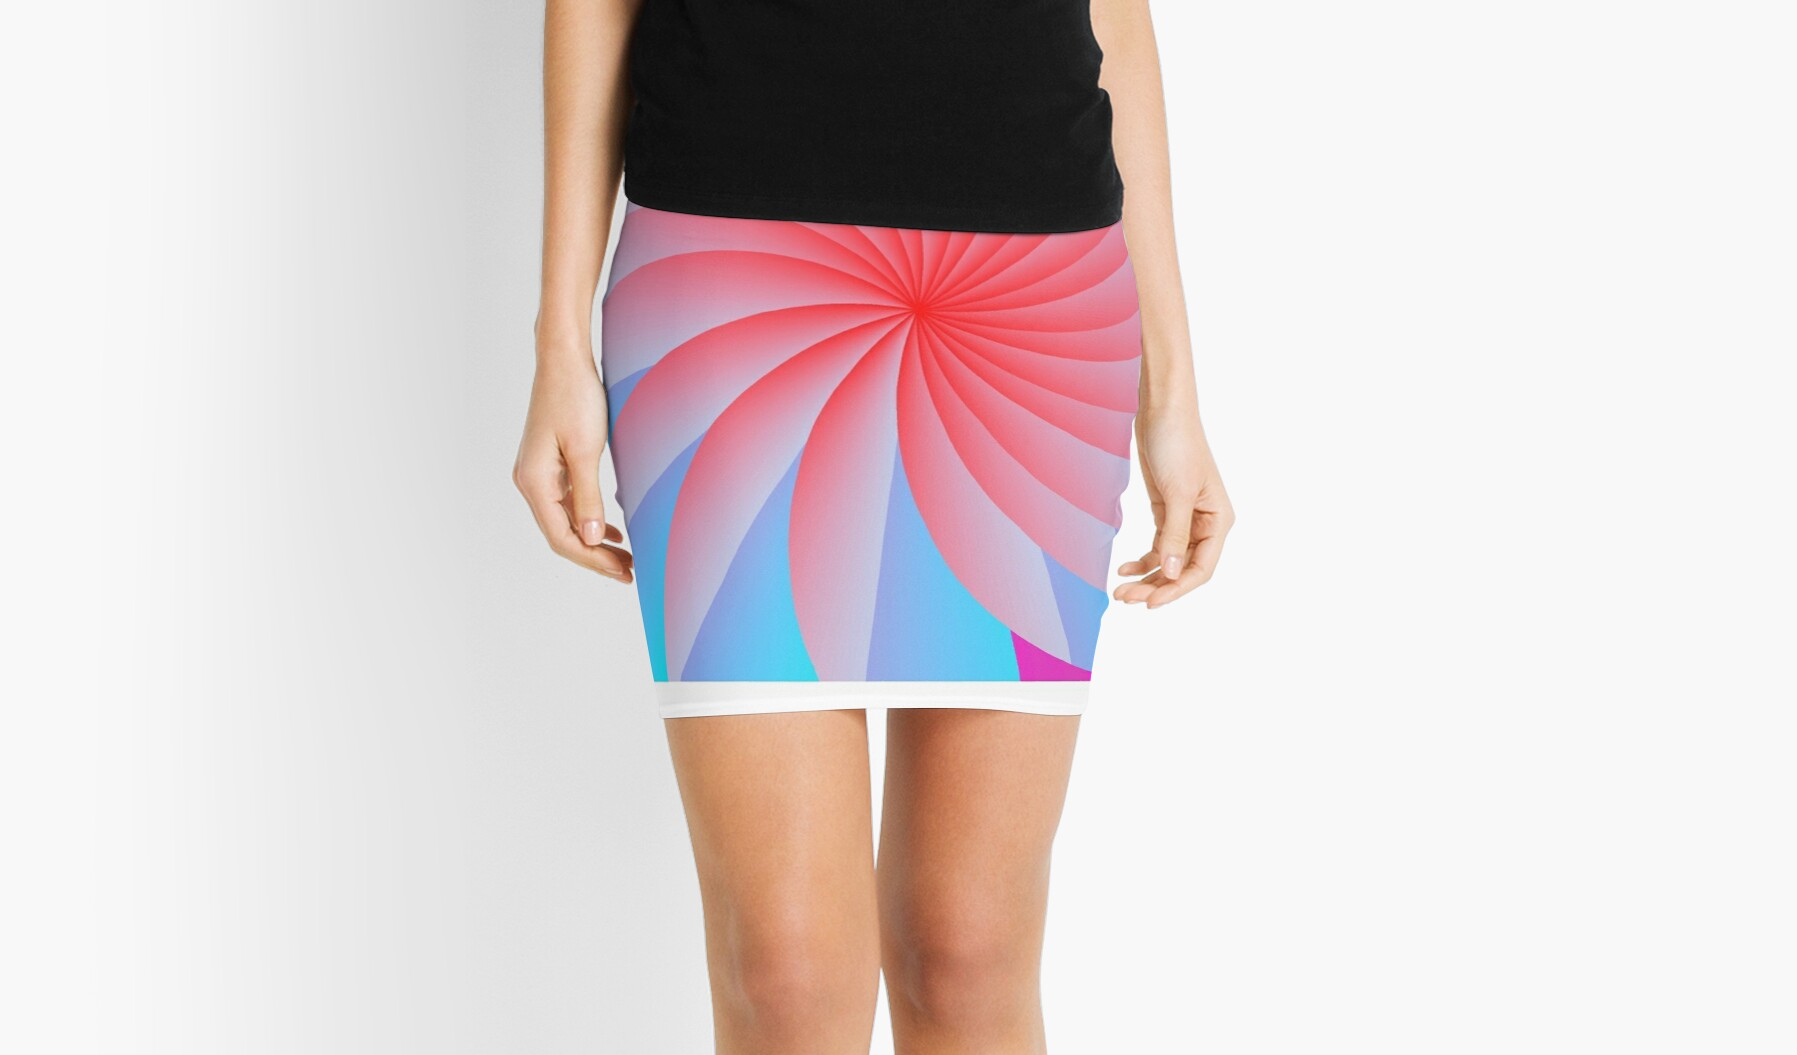 http://www.redbubble.com/people/zedpower/works/21555122-pink-pillow-posse?asc=u&p=pencil-skirt&rel=carousel